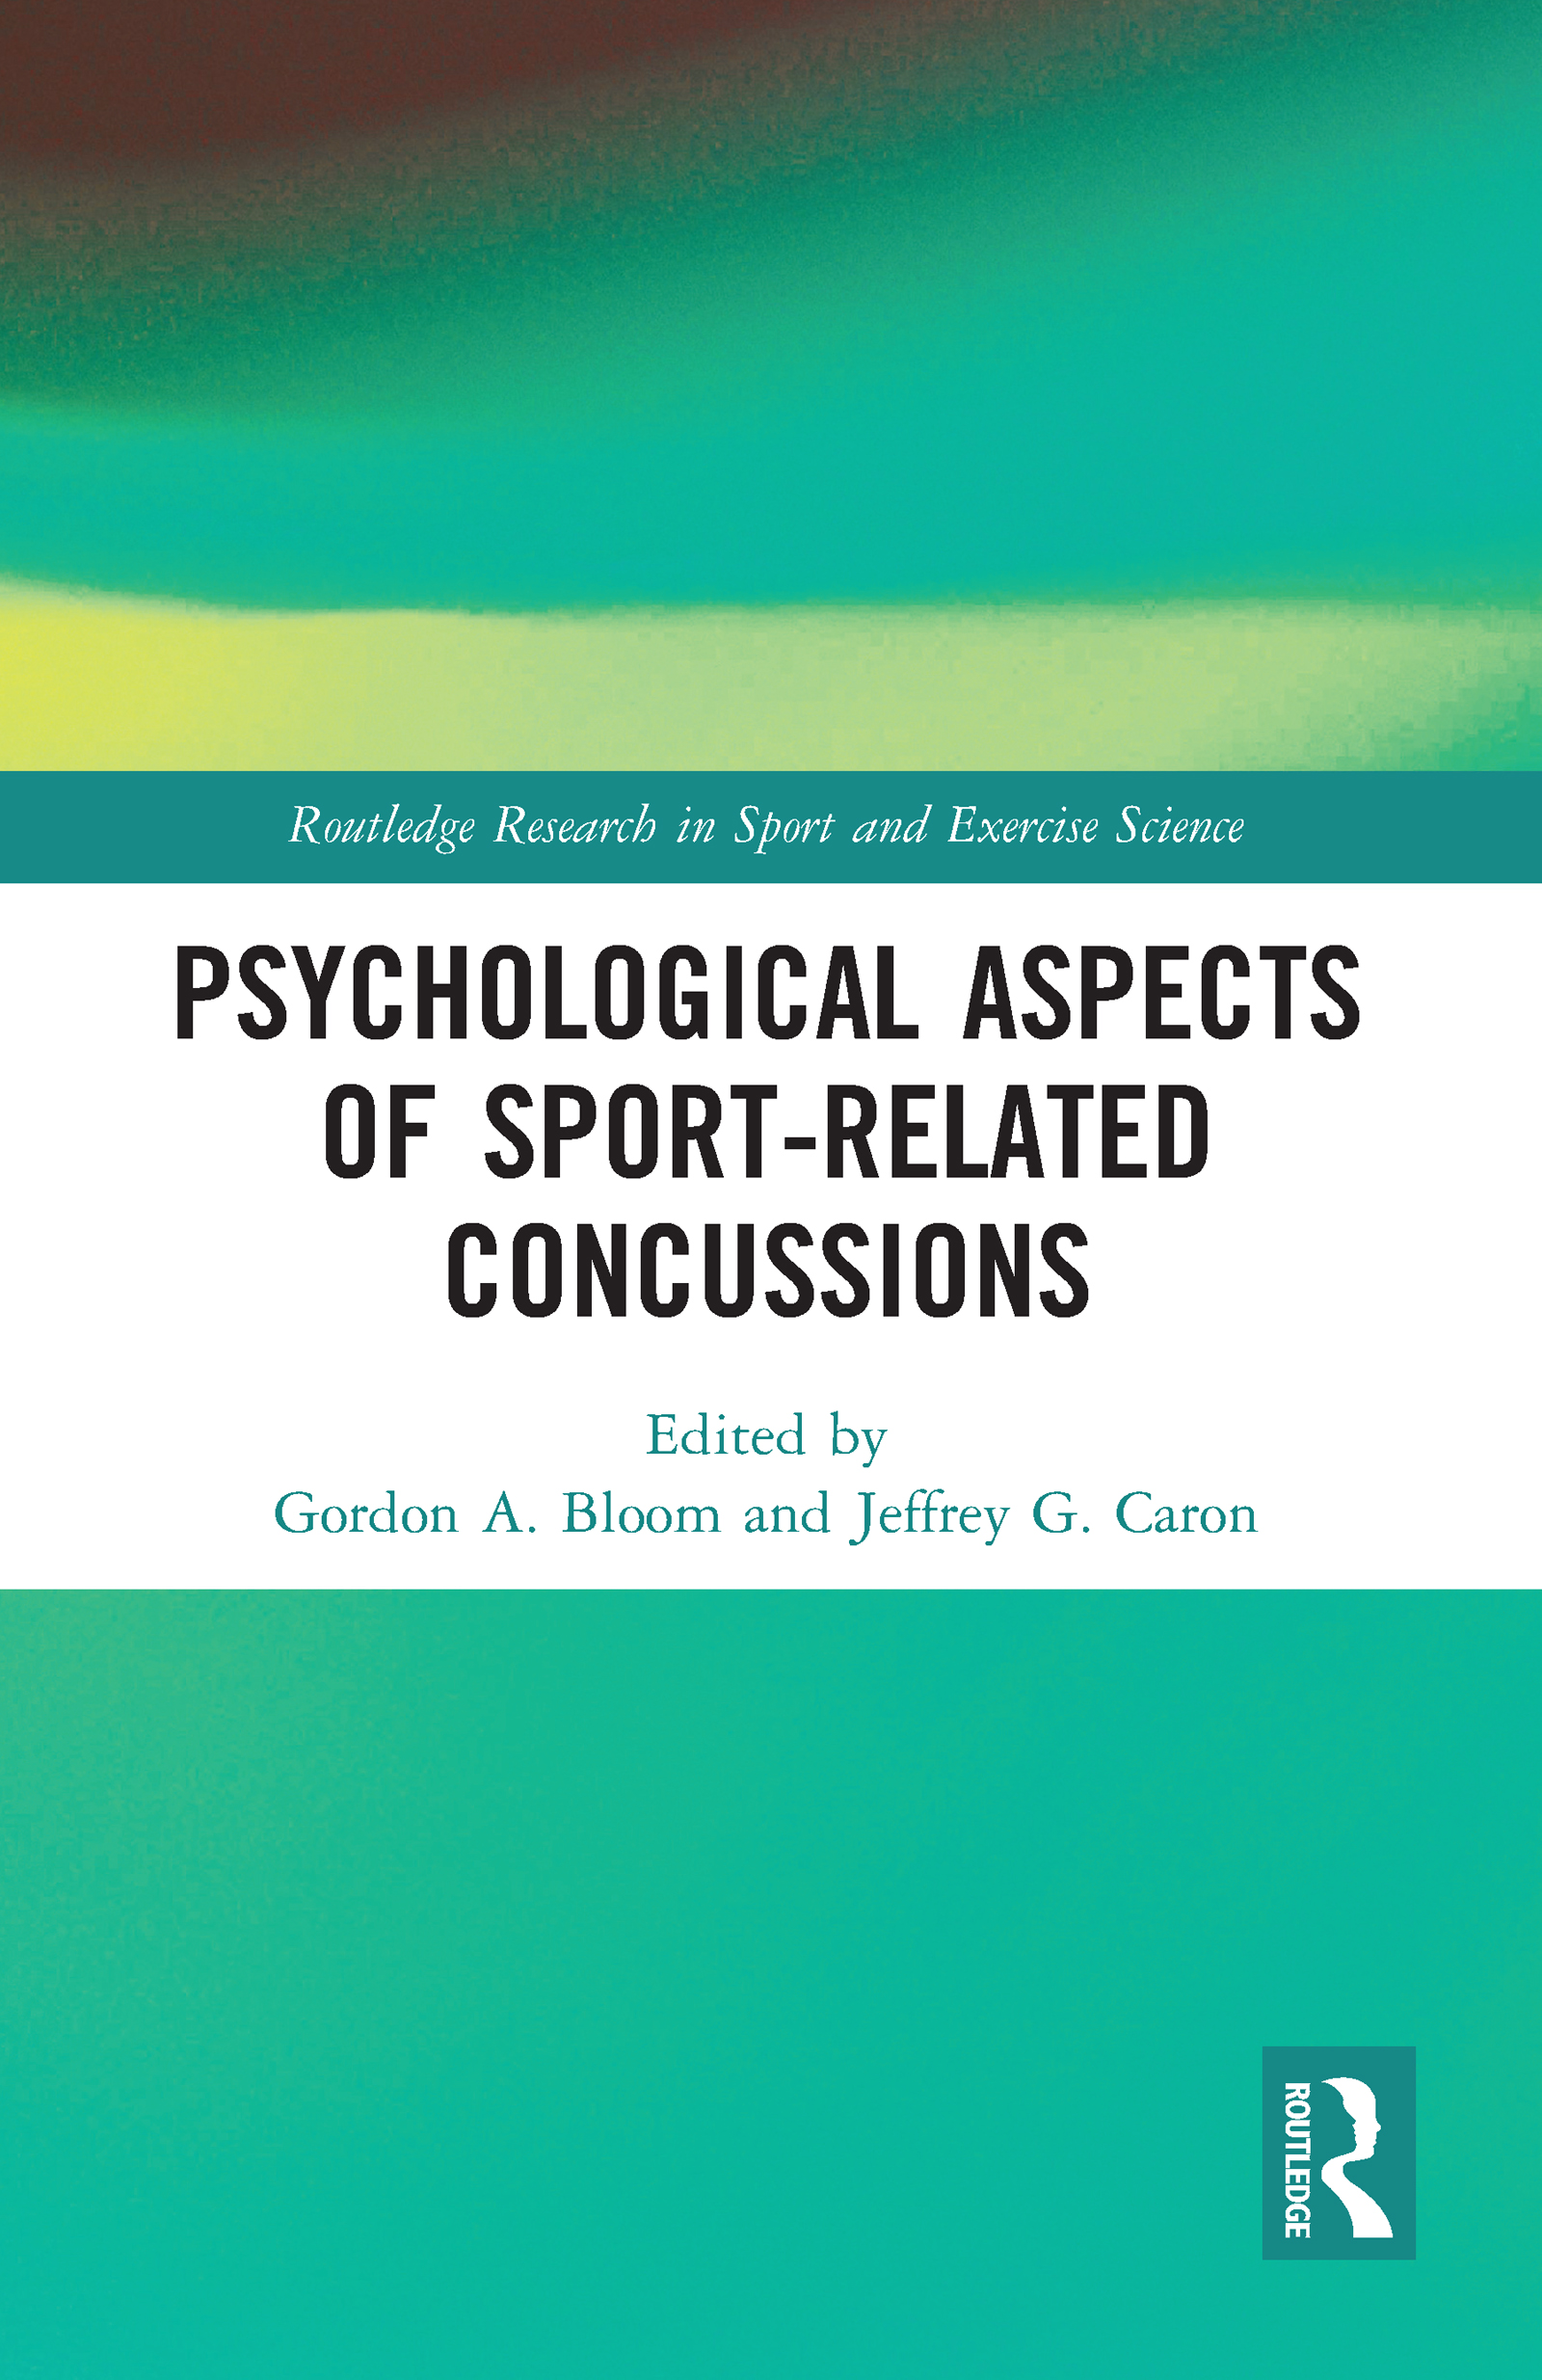 Psychological Aspects of Sport-Related Concussions